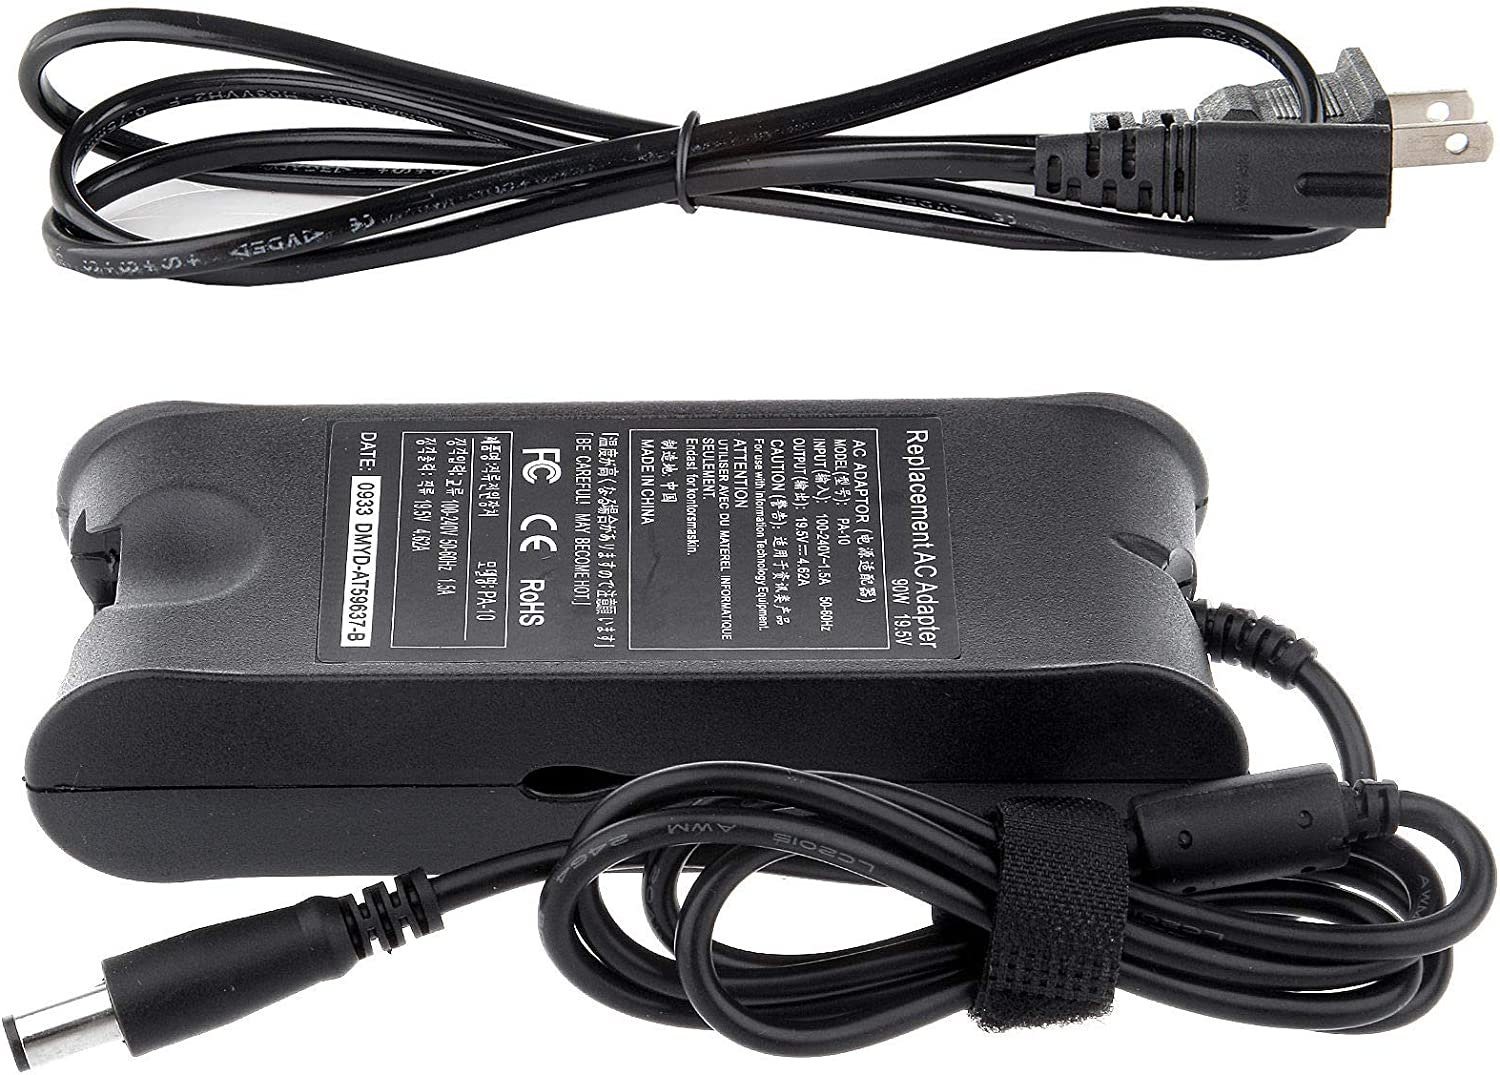 yan AC Adapter Charger for Dell Inspiron 15 3543 5545 5548 7547 Power Supply 65W